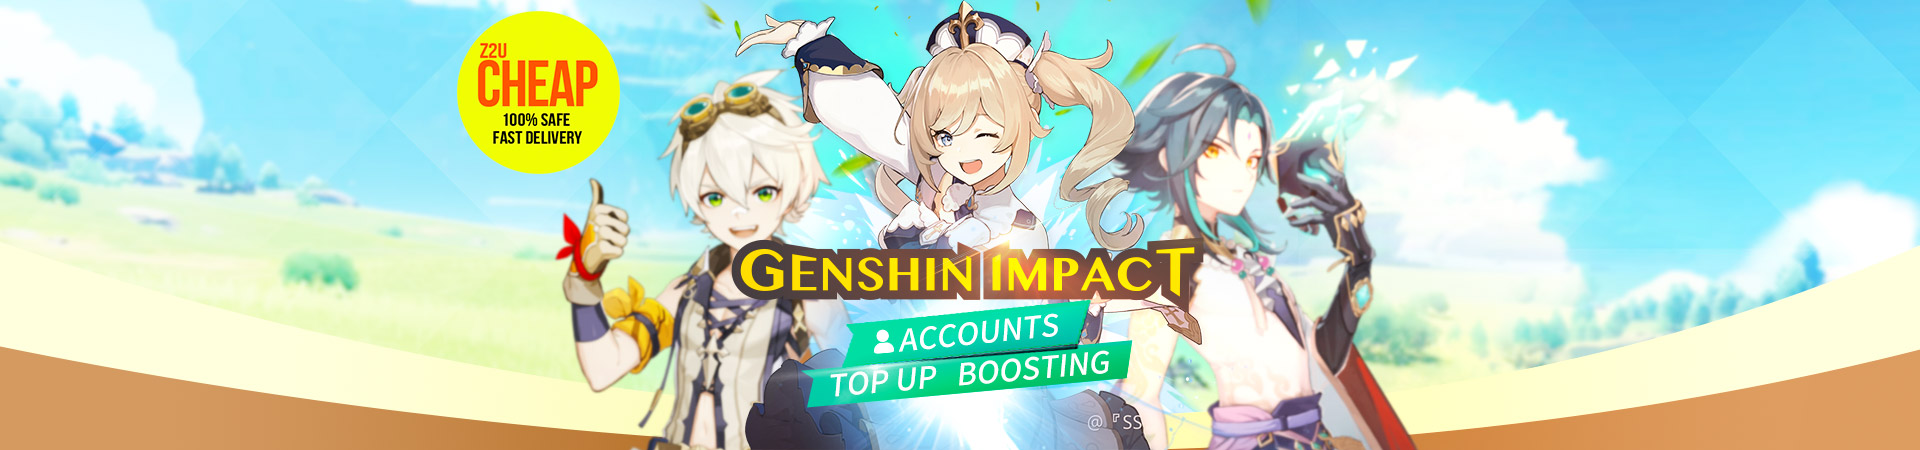 Genshin Impact Account